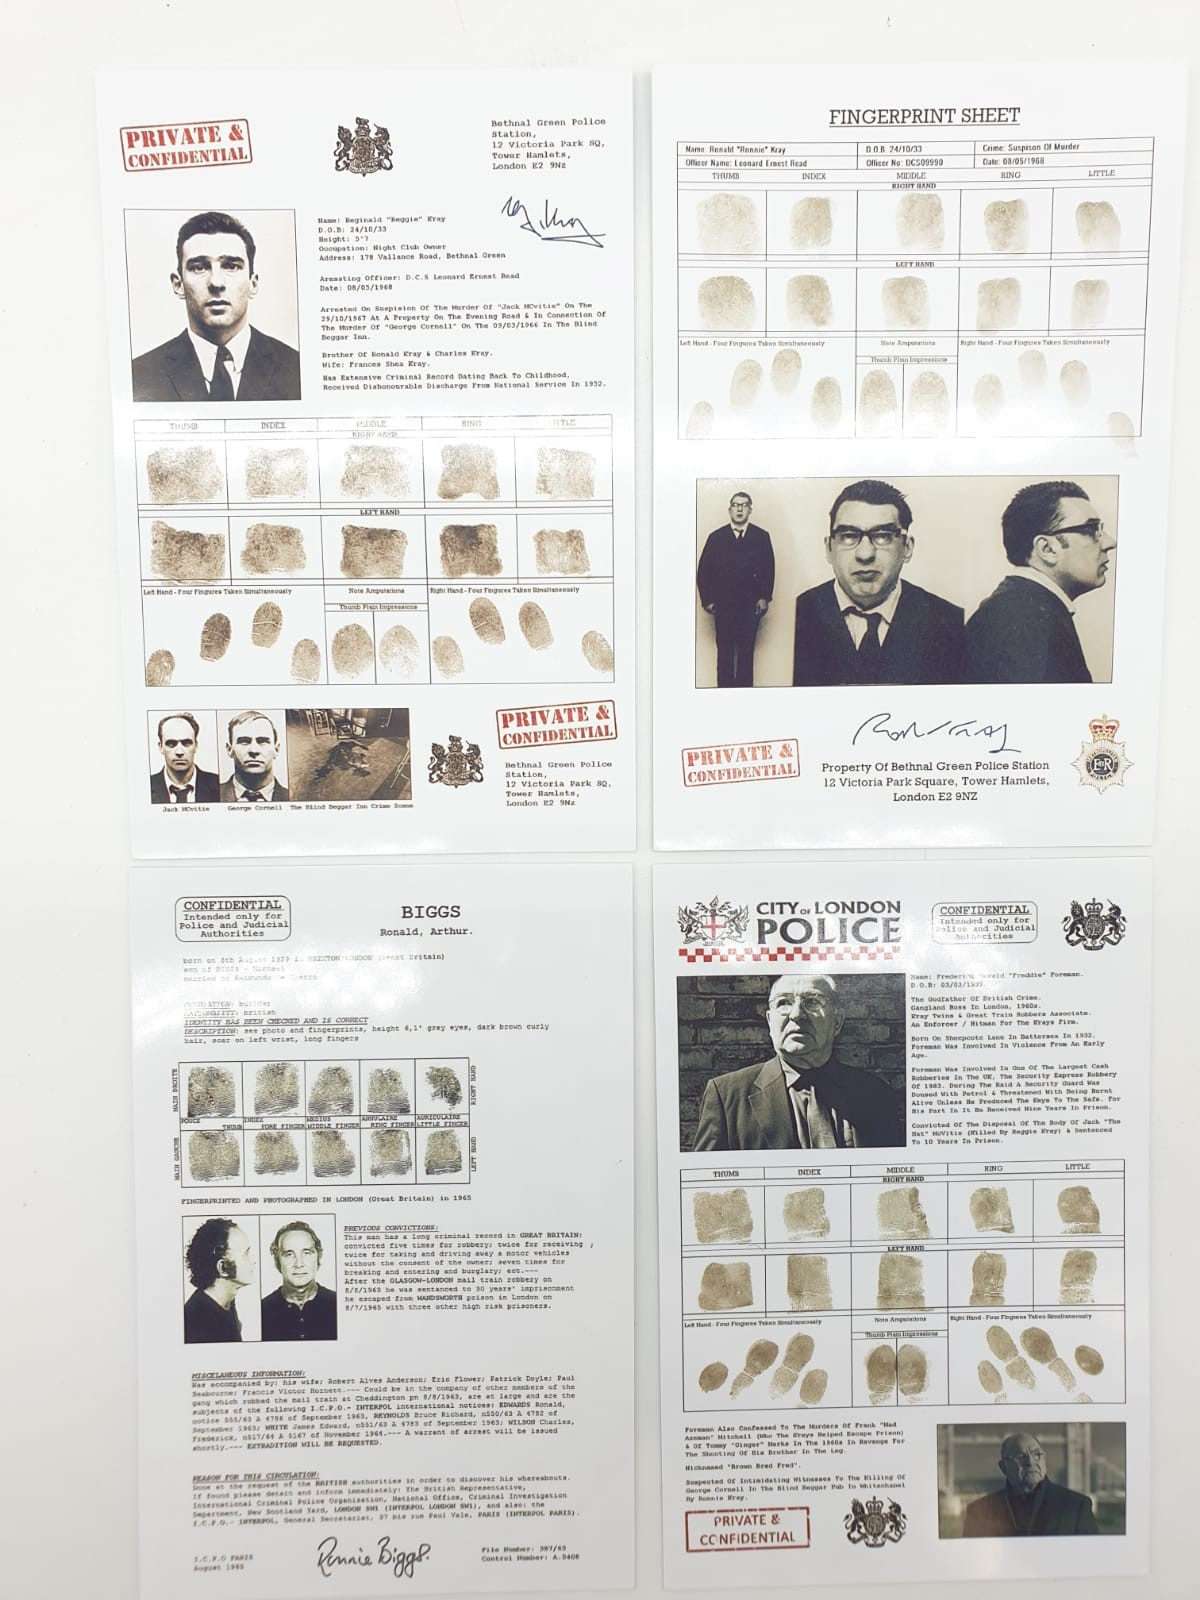 City of London police confidential records for Freddie Foreman, Frankie Fraser, Ronnie Biggs, The